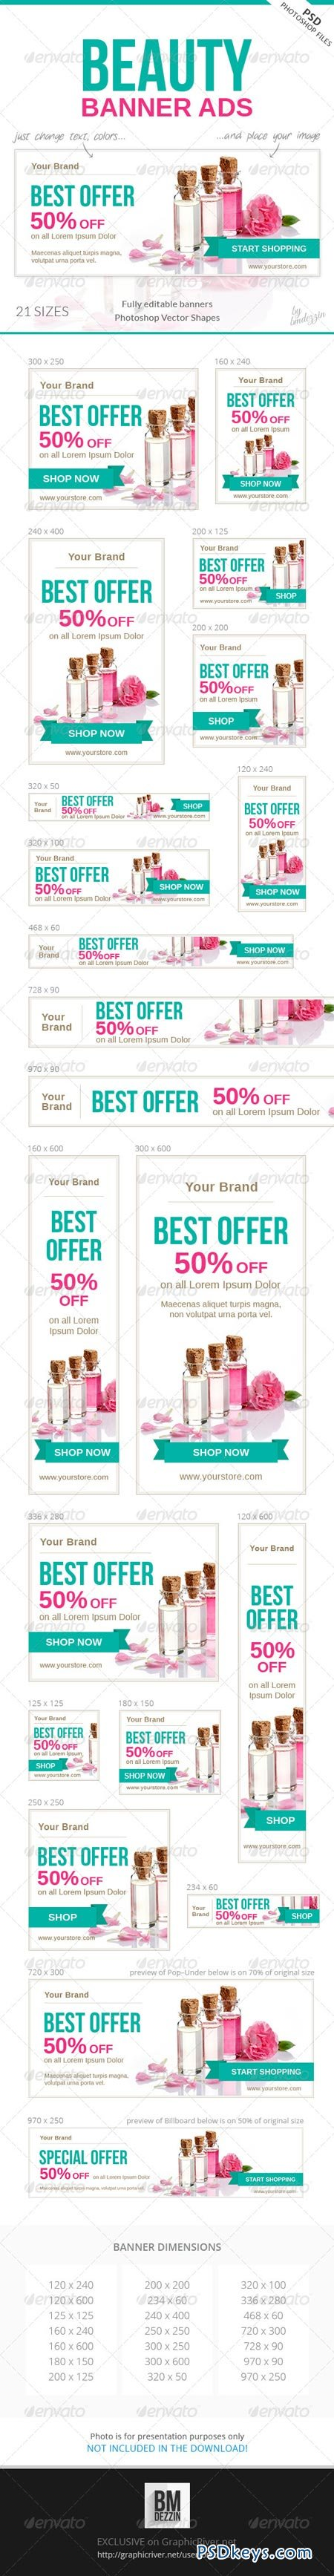 Beauty Banner Ads 7675465